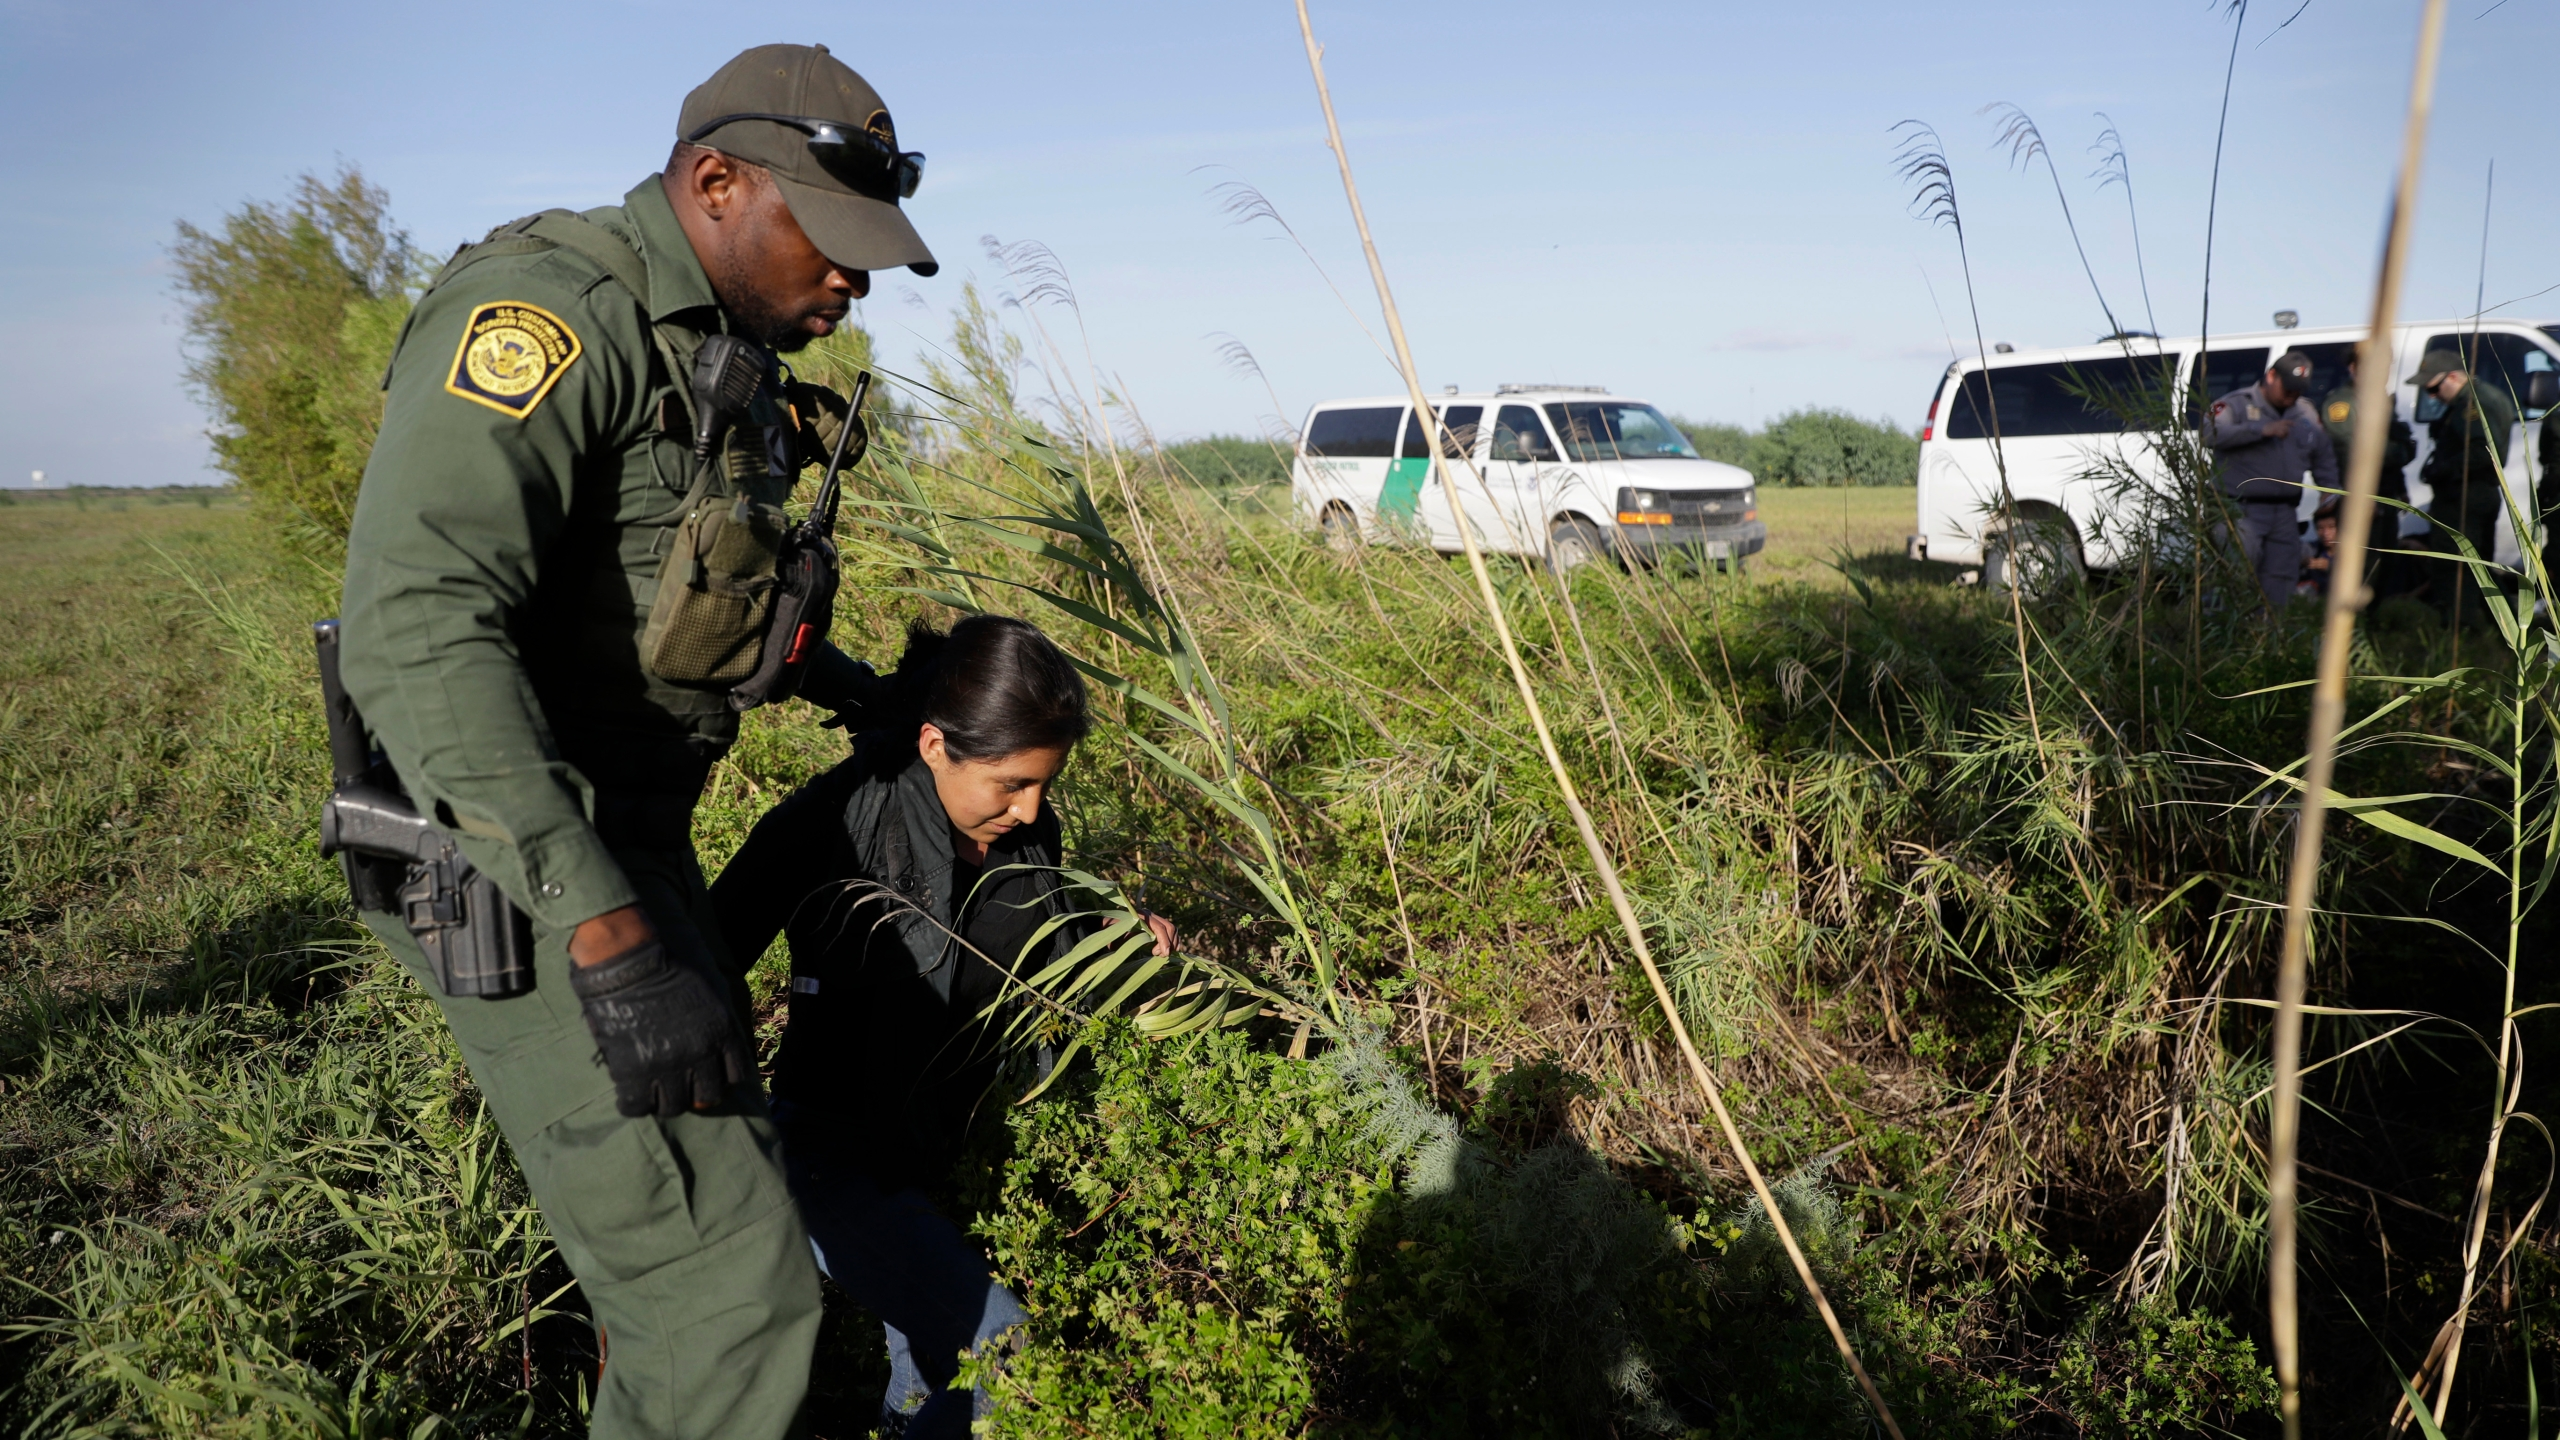 Immigration-Border_Arrests_43228-159532.jpg38272673